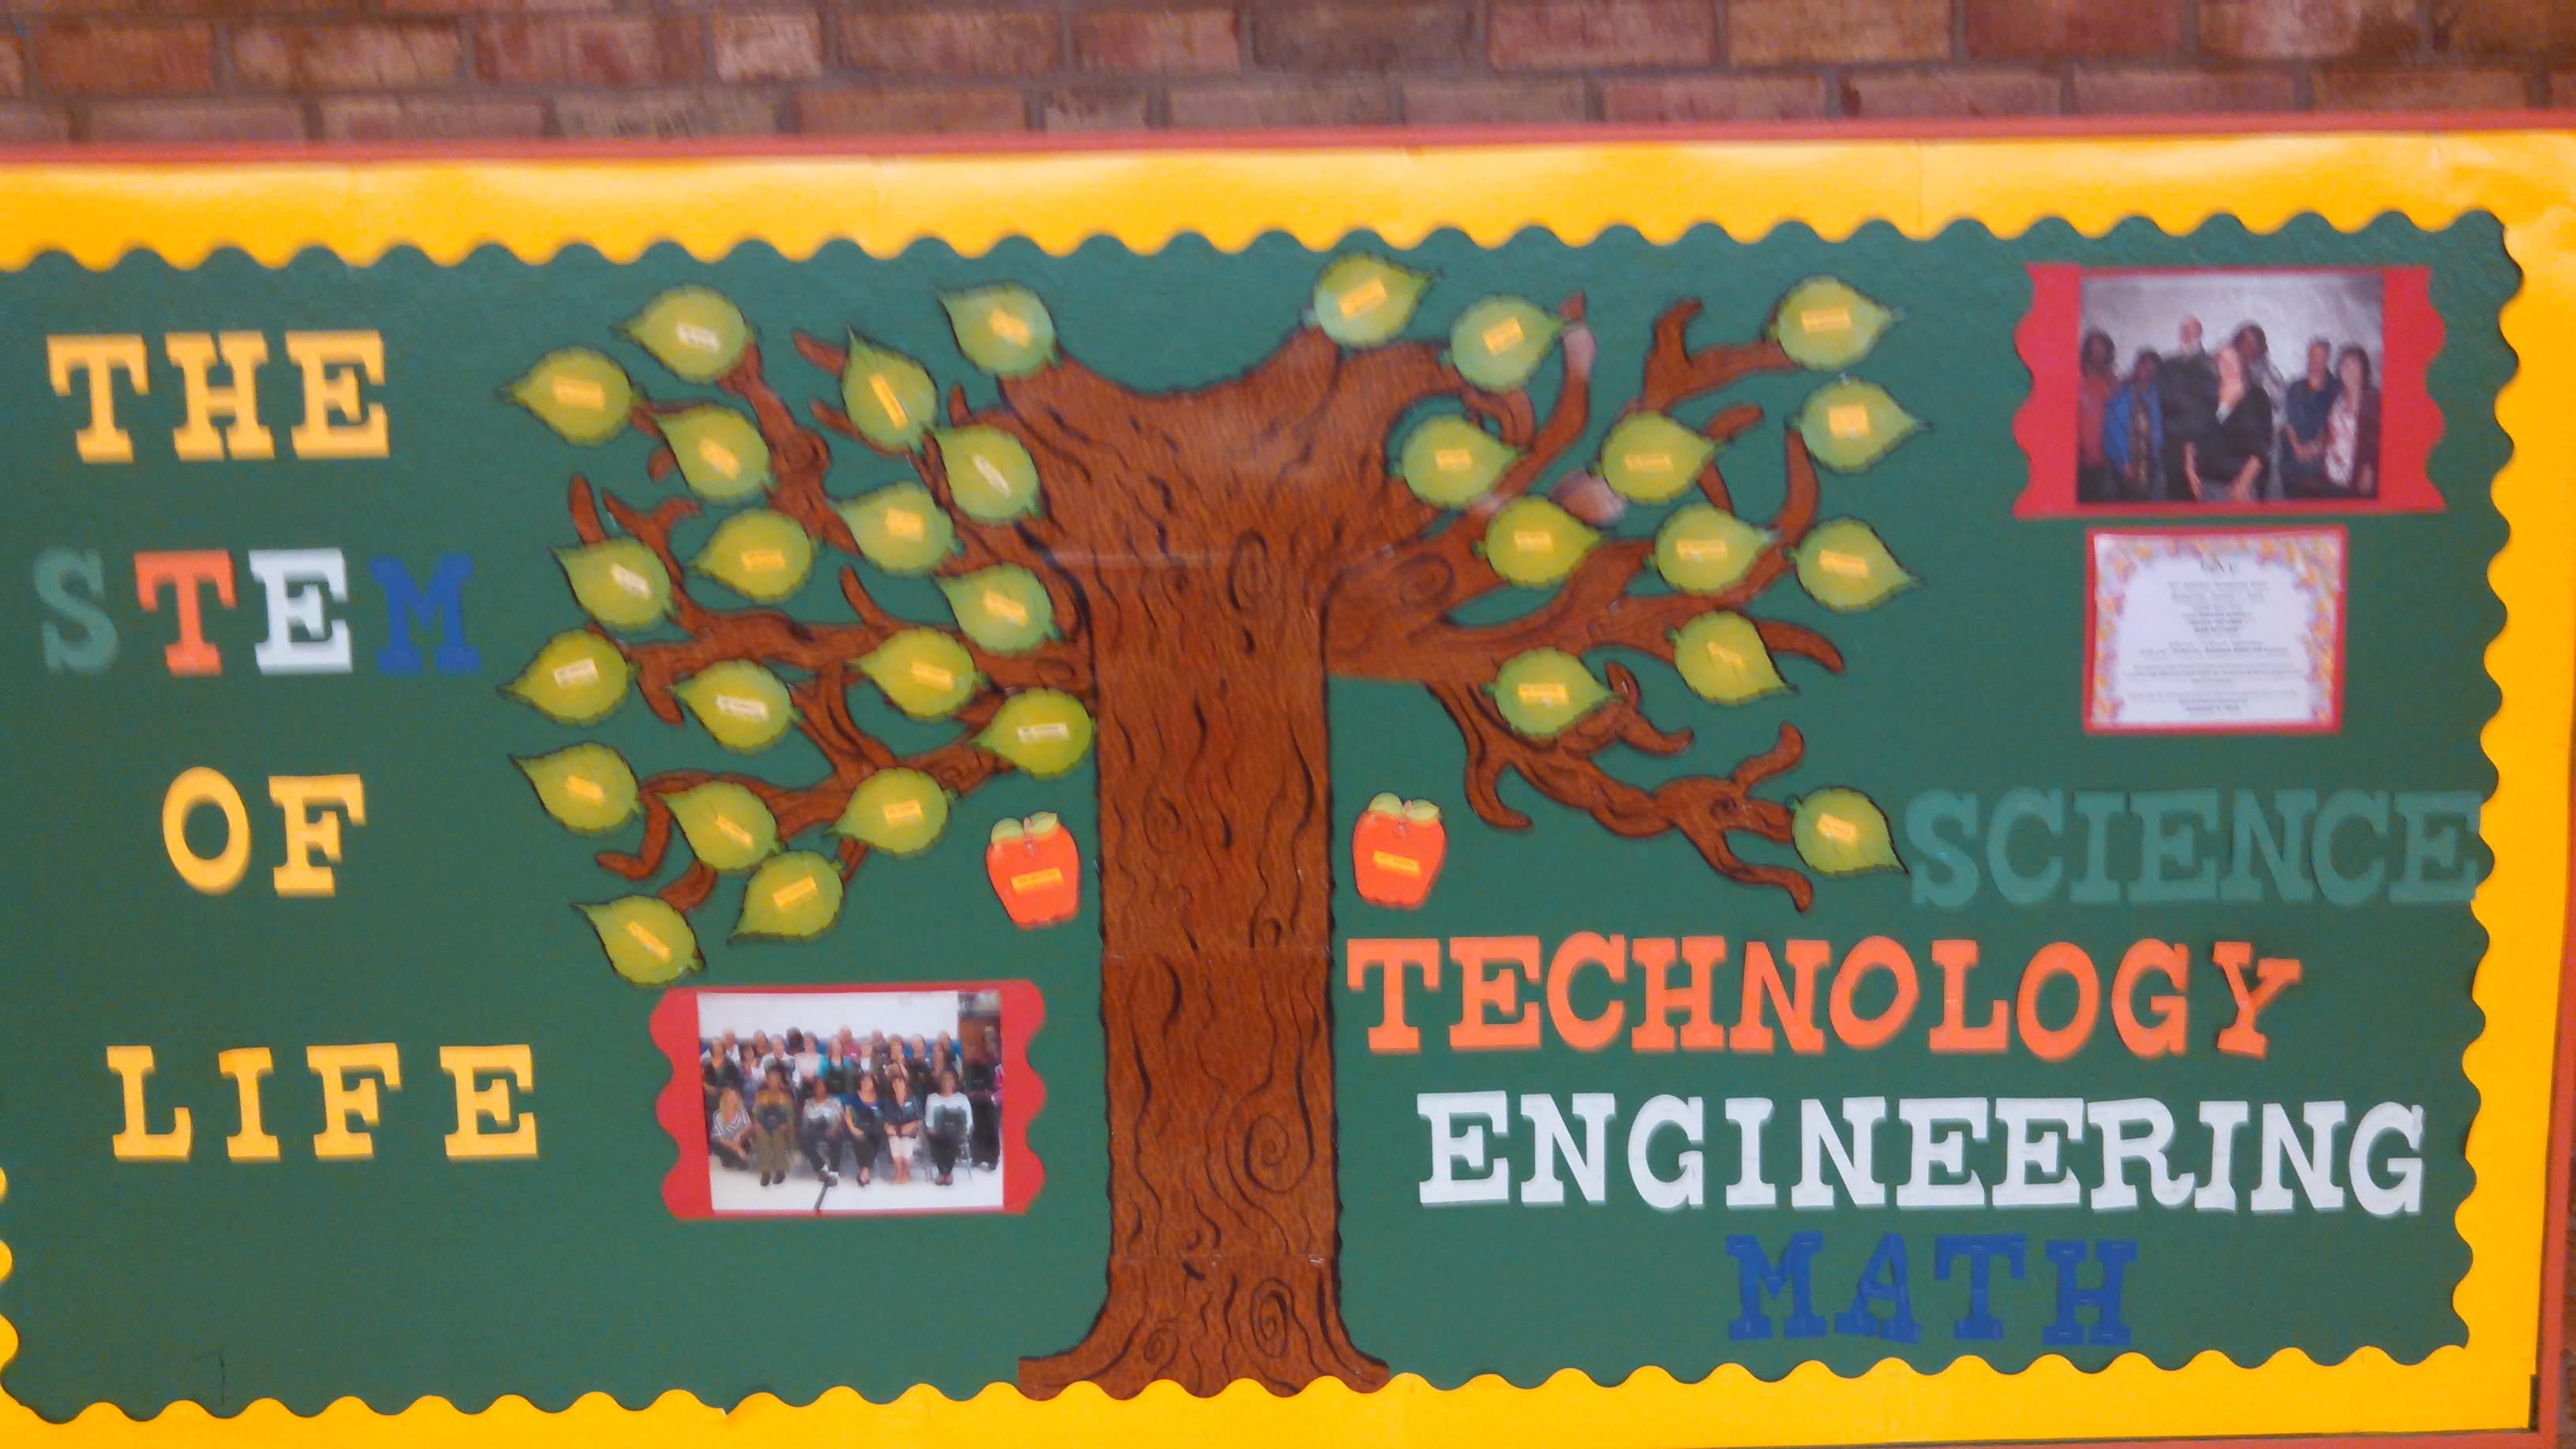 Aauw Stem Program At Summit Park Elementary Rockland County Ny Branch